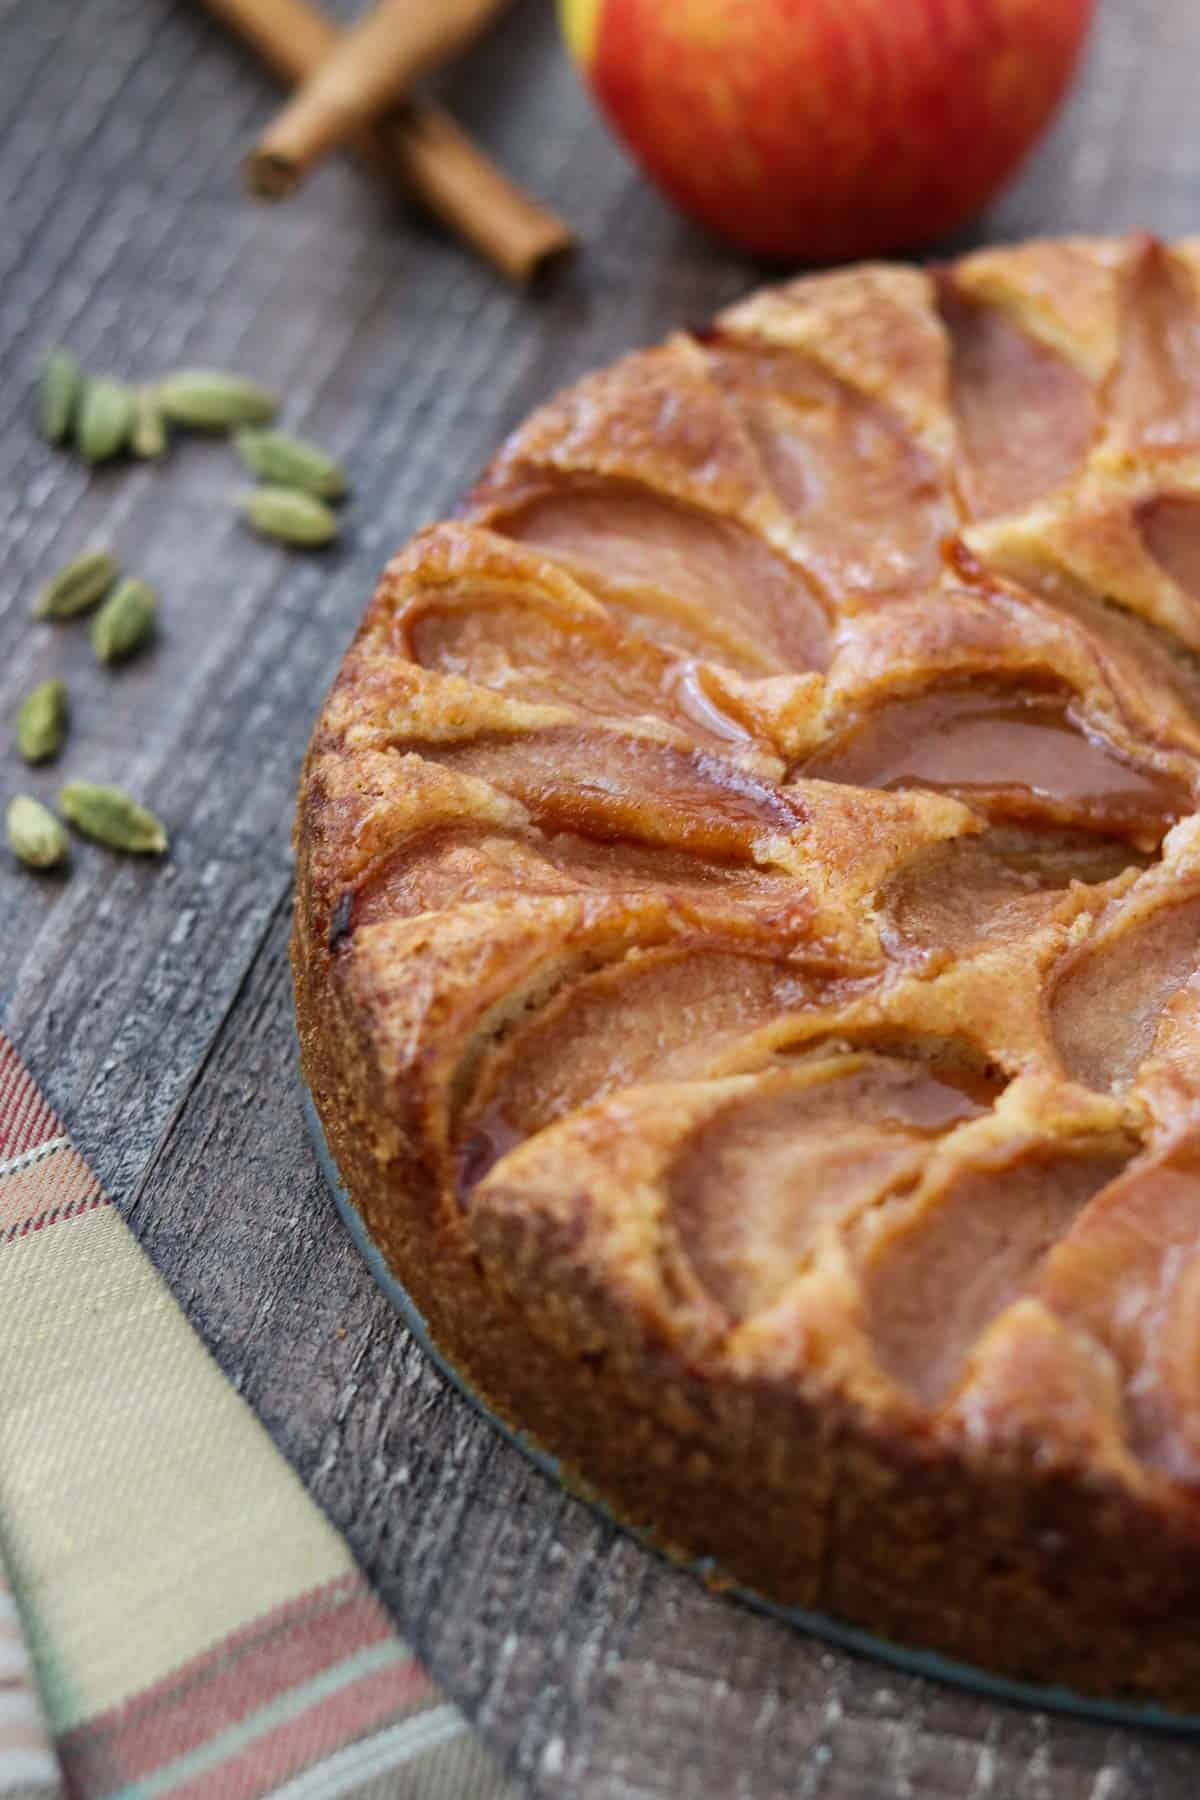 Side view of Swedish Apple Cake with cardamom pods and a plaid napkin.